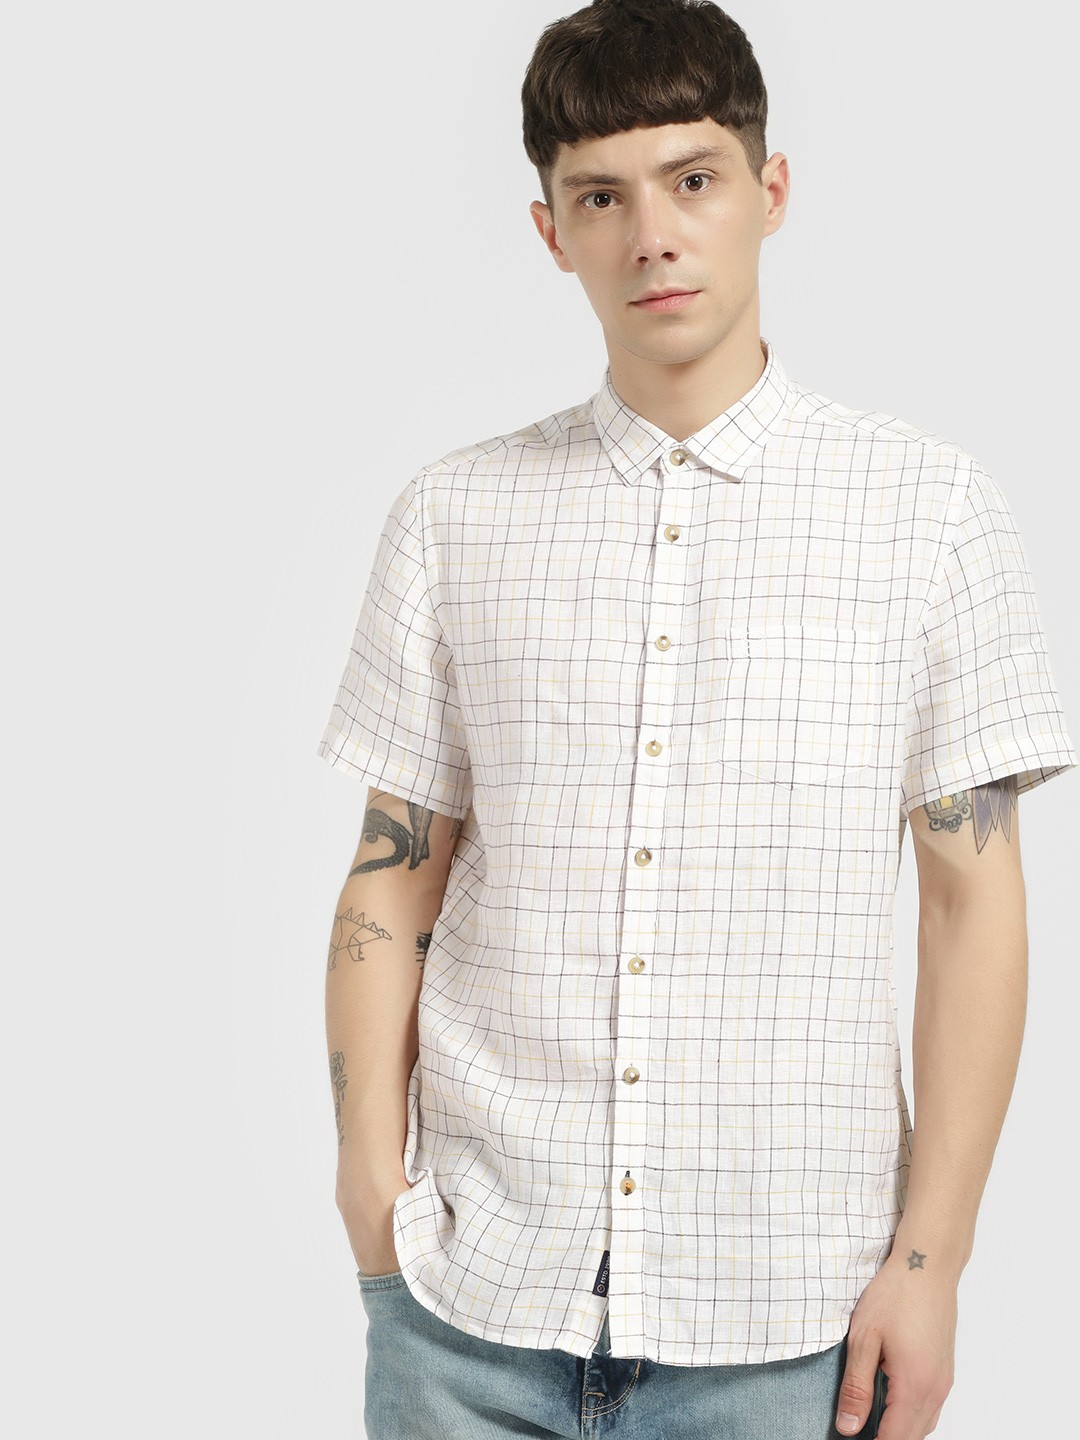 SCULLERS White Grid Check Short Sleeve Shirt 1